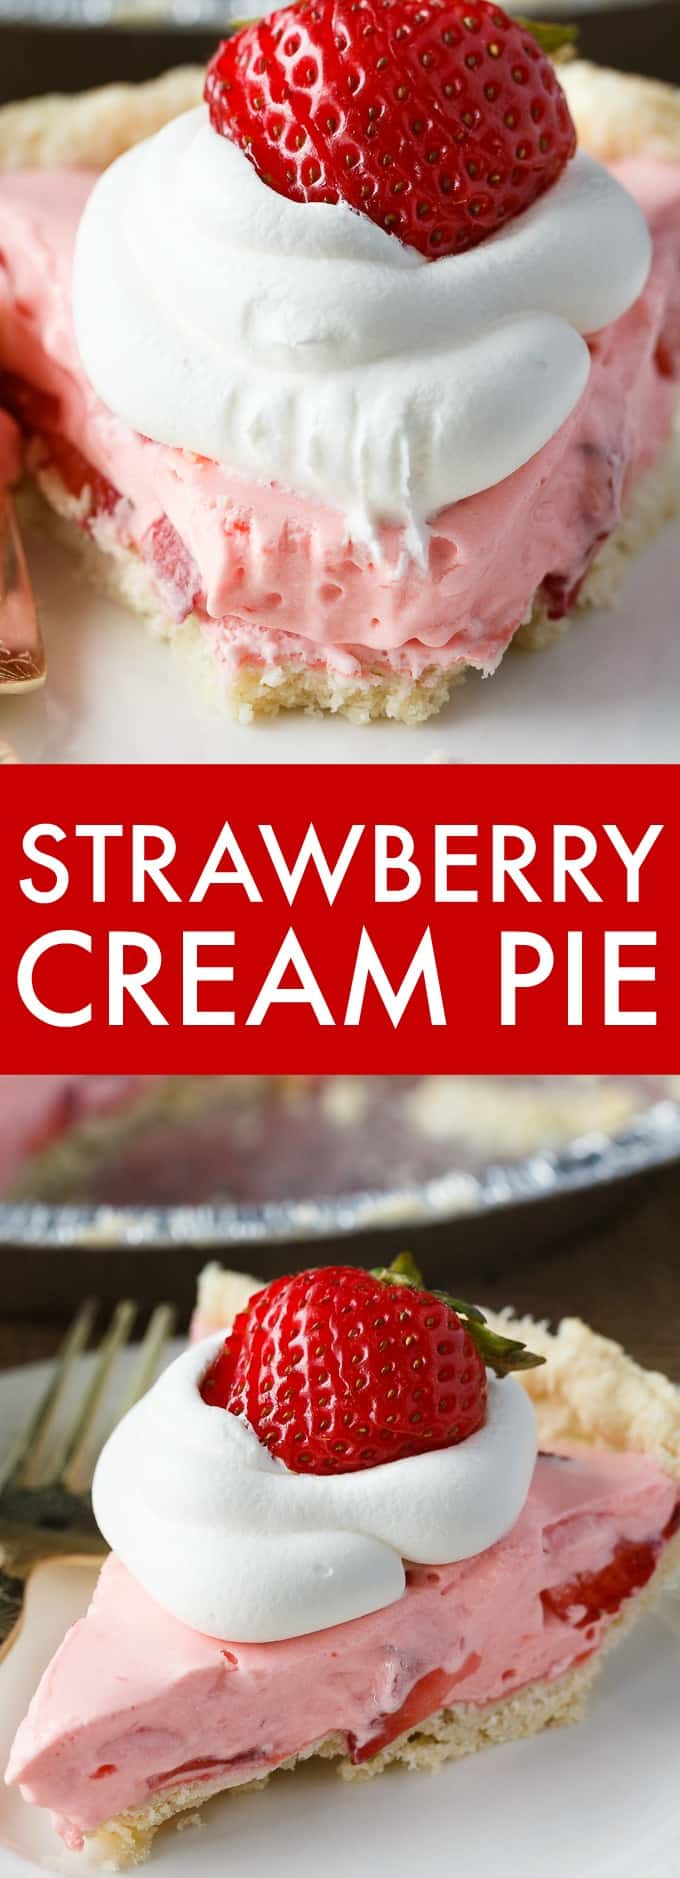 Strawberry Cream Pie - A simple summer dessert that's super fresh and fruity. Made with just six ingredients and no baking!